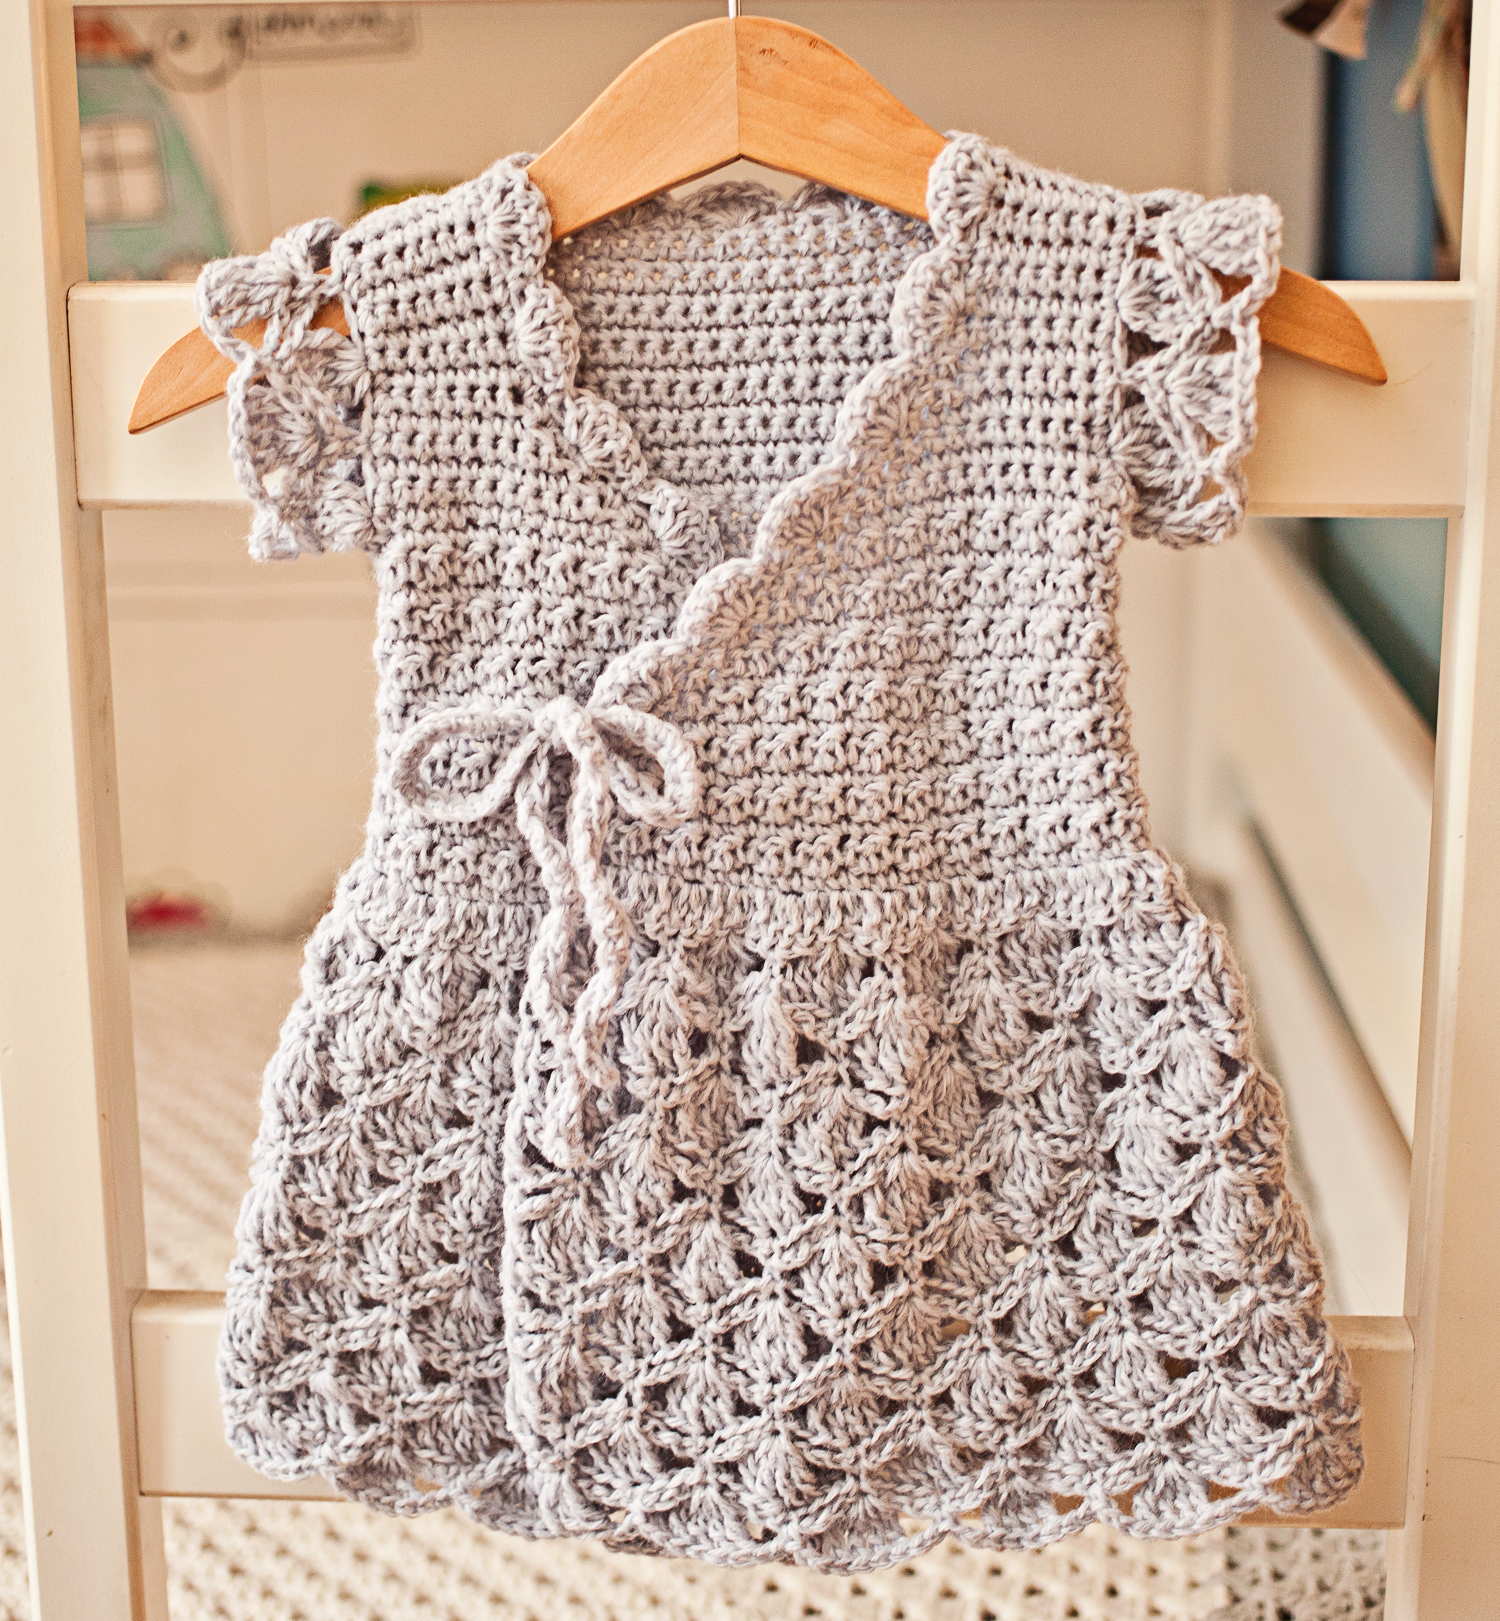 Now You Can Make Crochet Wrap Dress New Pattern Available Mon